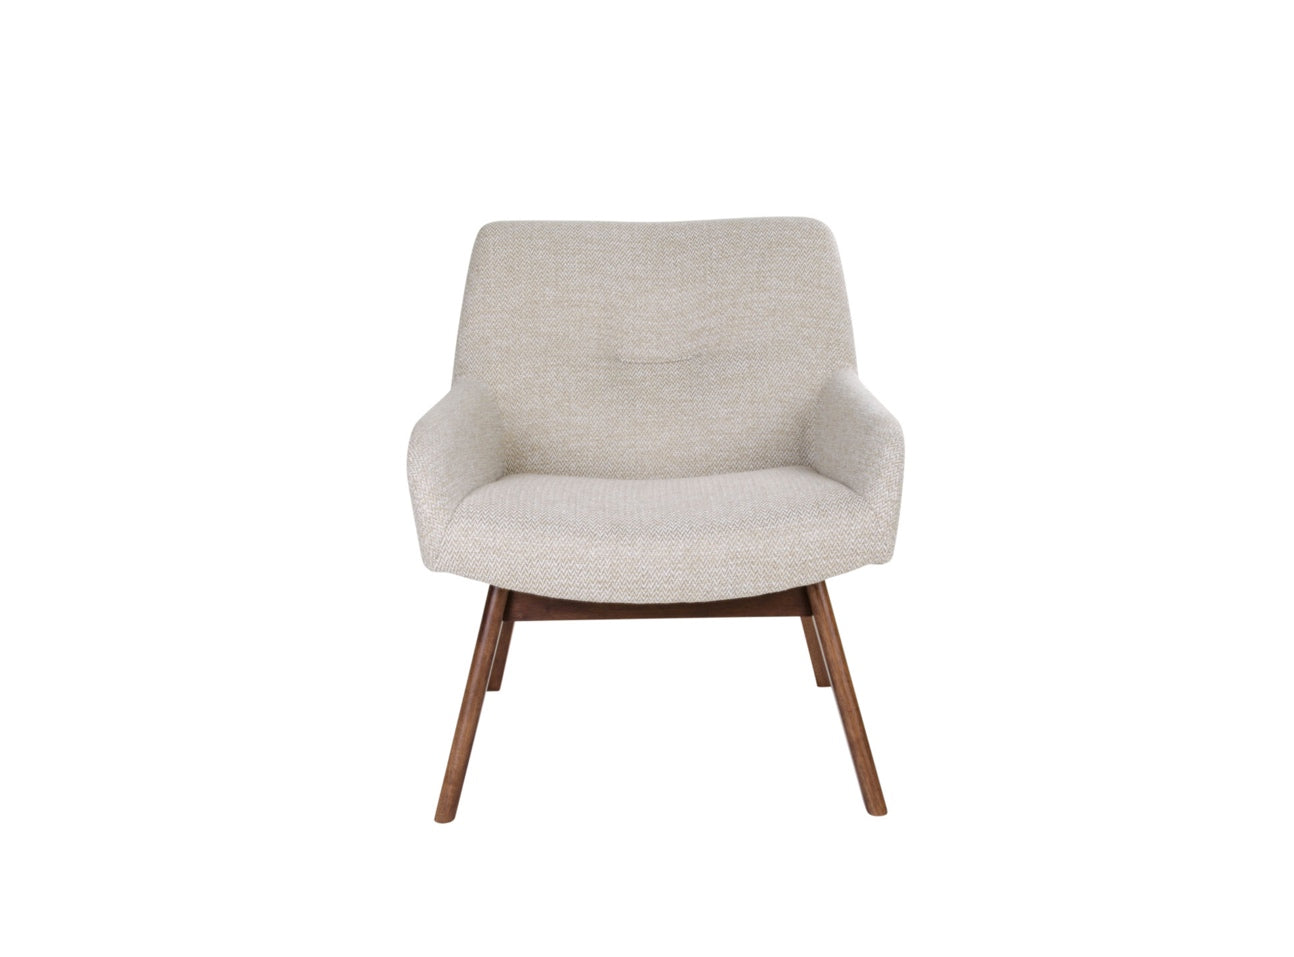 Subscription_OMNI_Morgan_Armchair_wooden_legs_Beige_furniture_office_comfortable_back_cushion_elegant